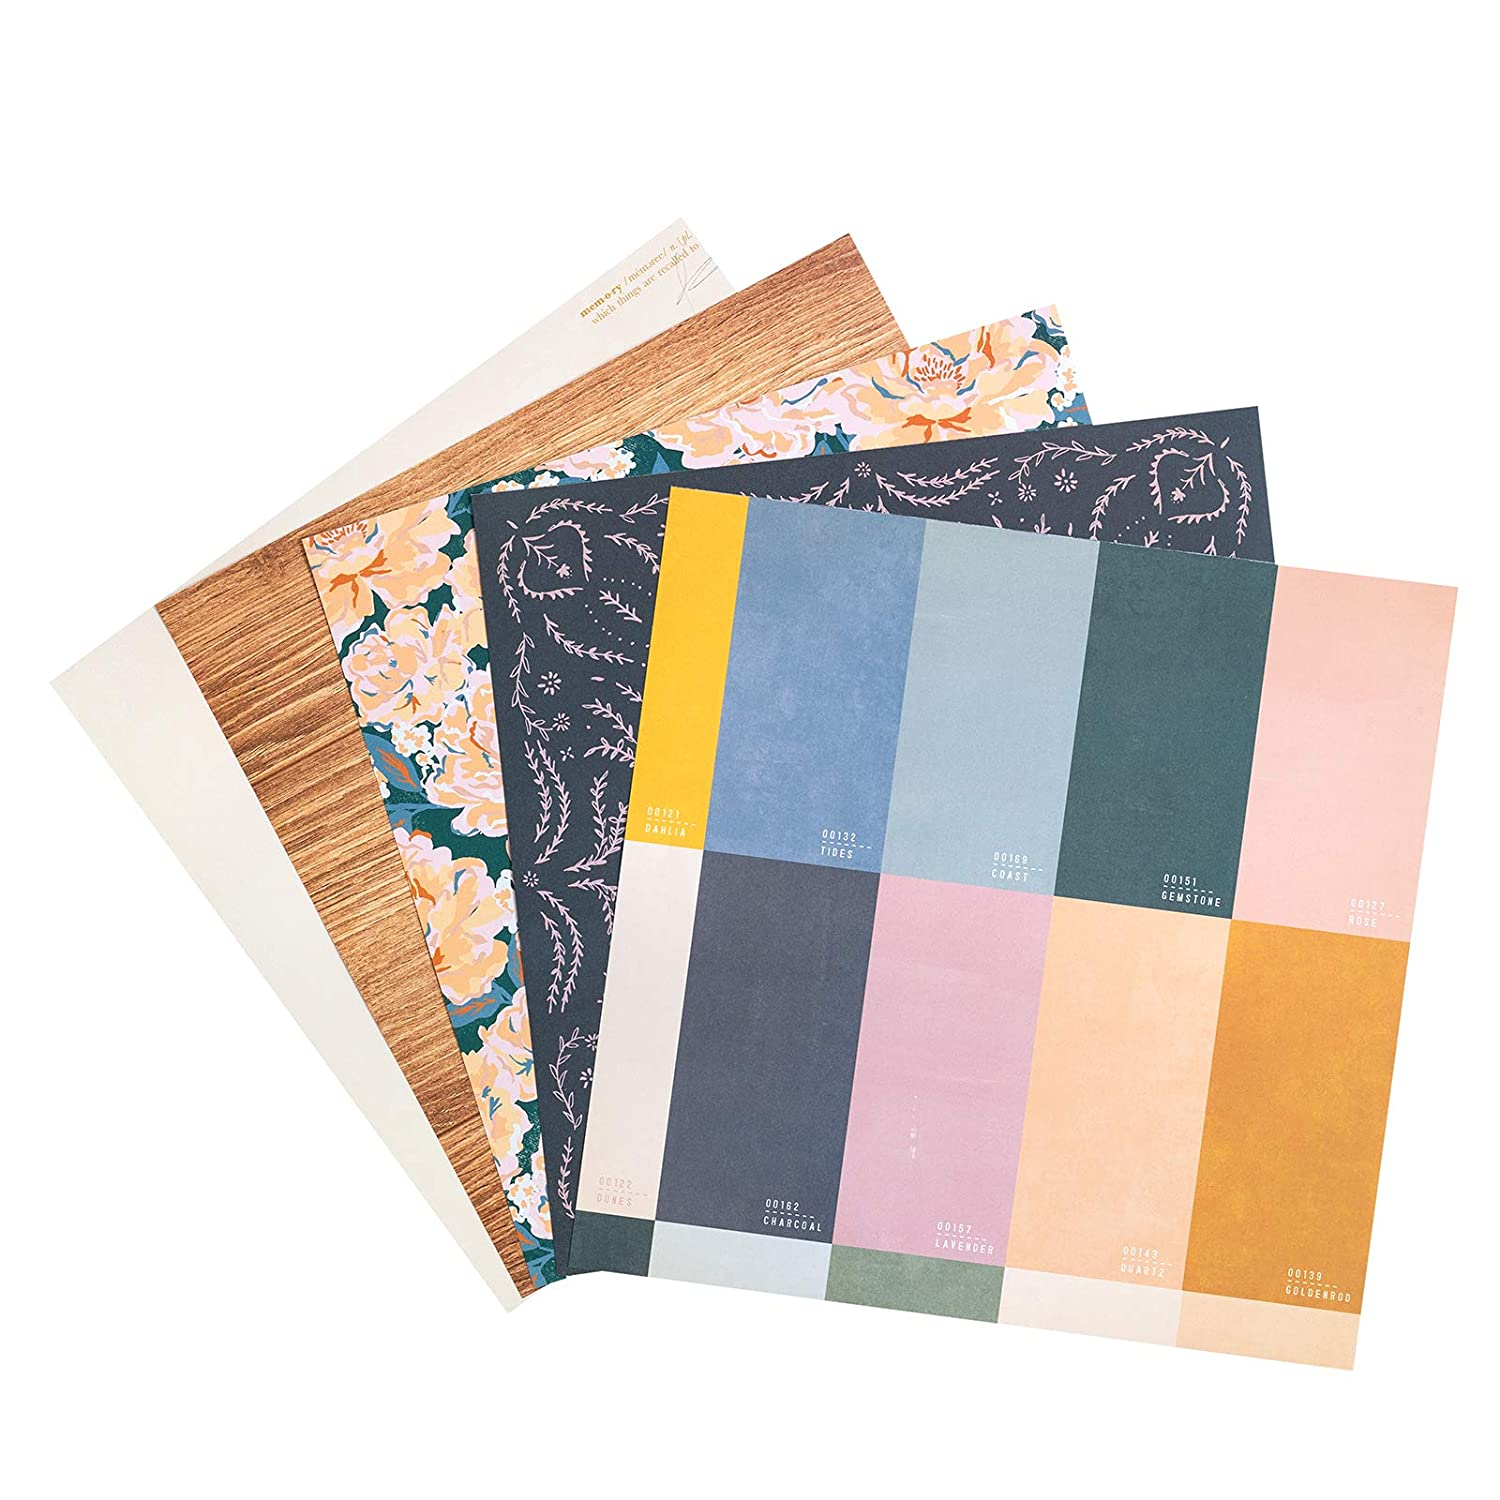 48 Sheets 24 Designs Medium Weight Paper Crate Paper American Crafts 12 x 12 Heritage Patterned Paper Pad